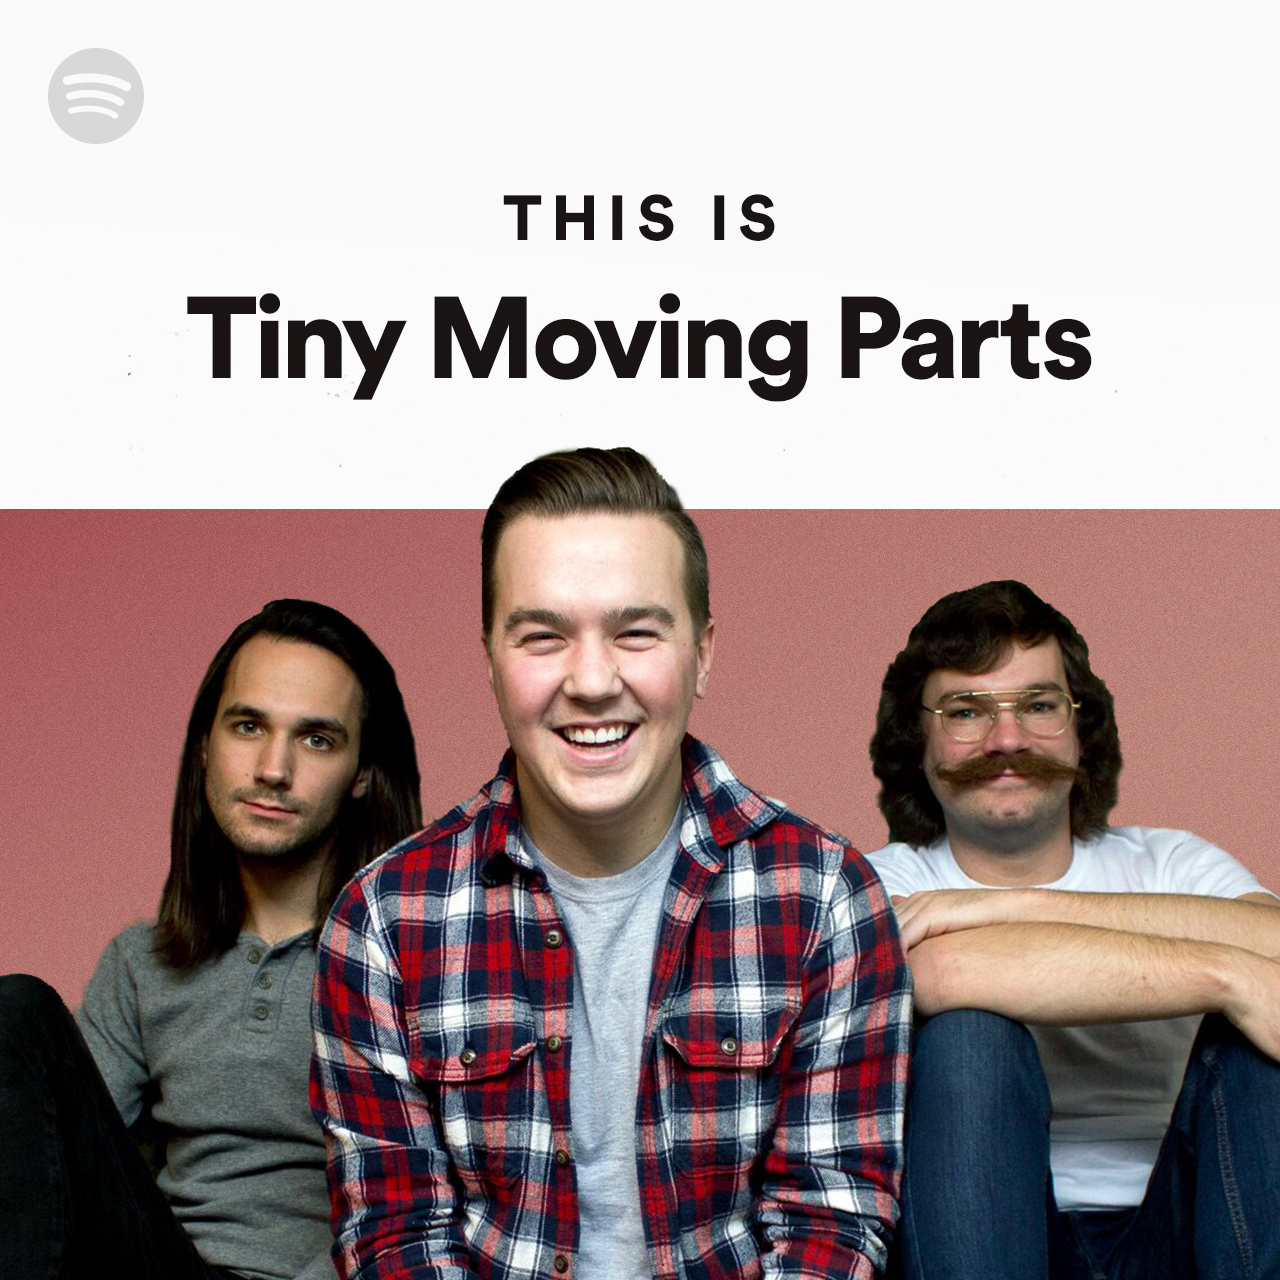 This Is Tiny Moving Partsのサムネイル